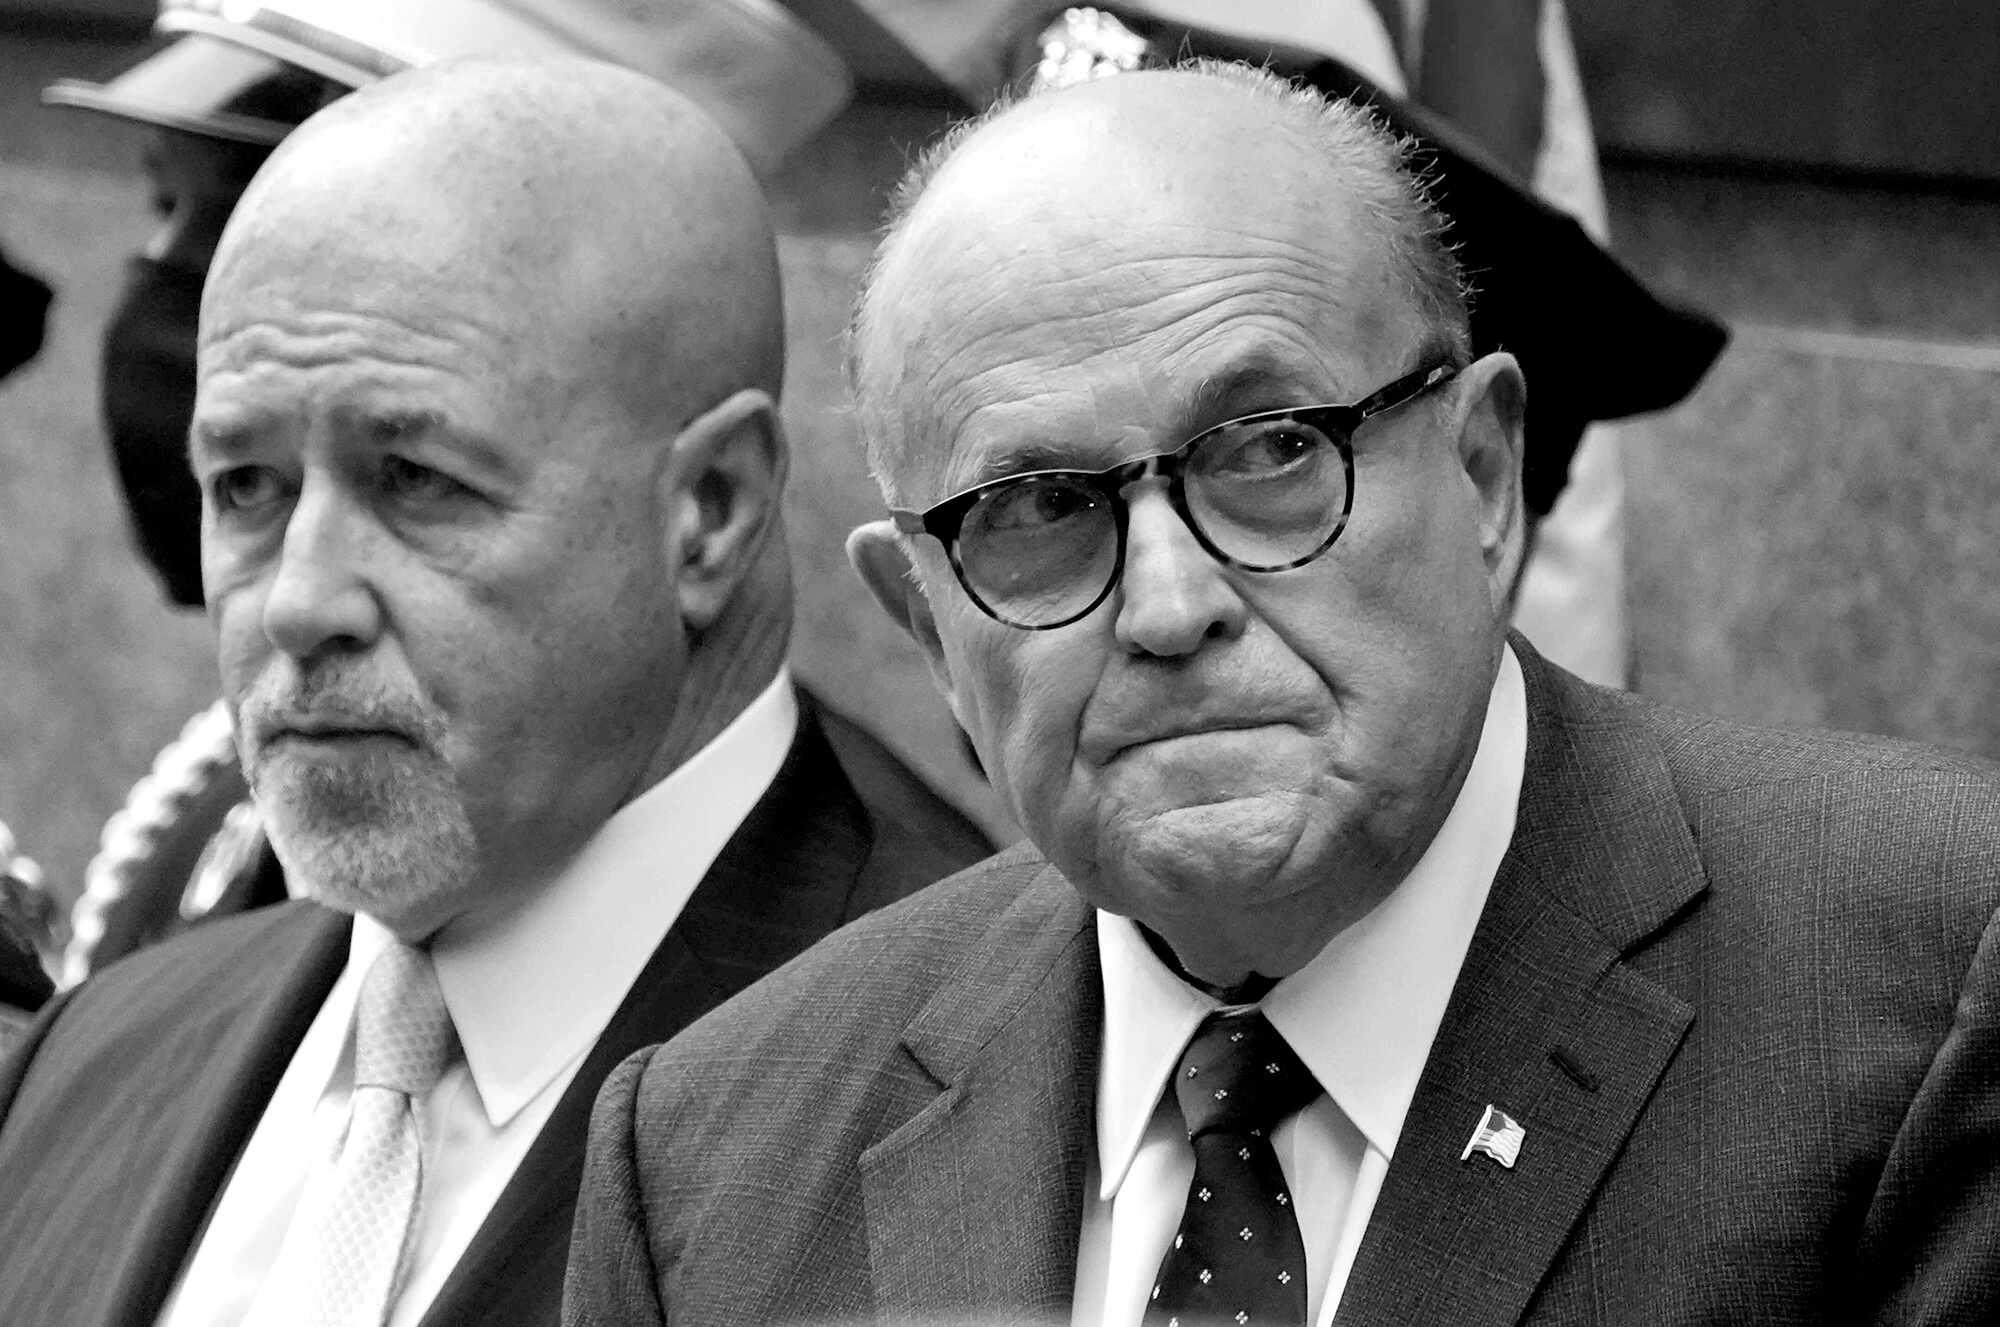 Donald Trump pardoned a longtime friend of his personal lawyer Rudy Giuliani, the former New York City Police Commissioner Bernard Kerik (left), for felony convictions. Future presidents might use the pardon power to even more detrimental effect to shield themselves and their inner circle from those who could testify to their misdeeds or crimes.